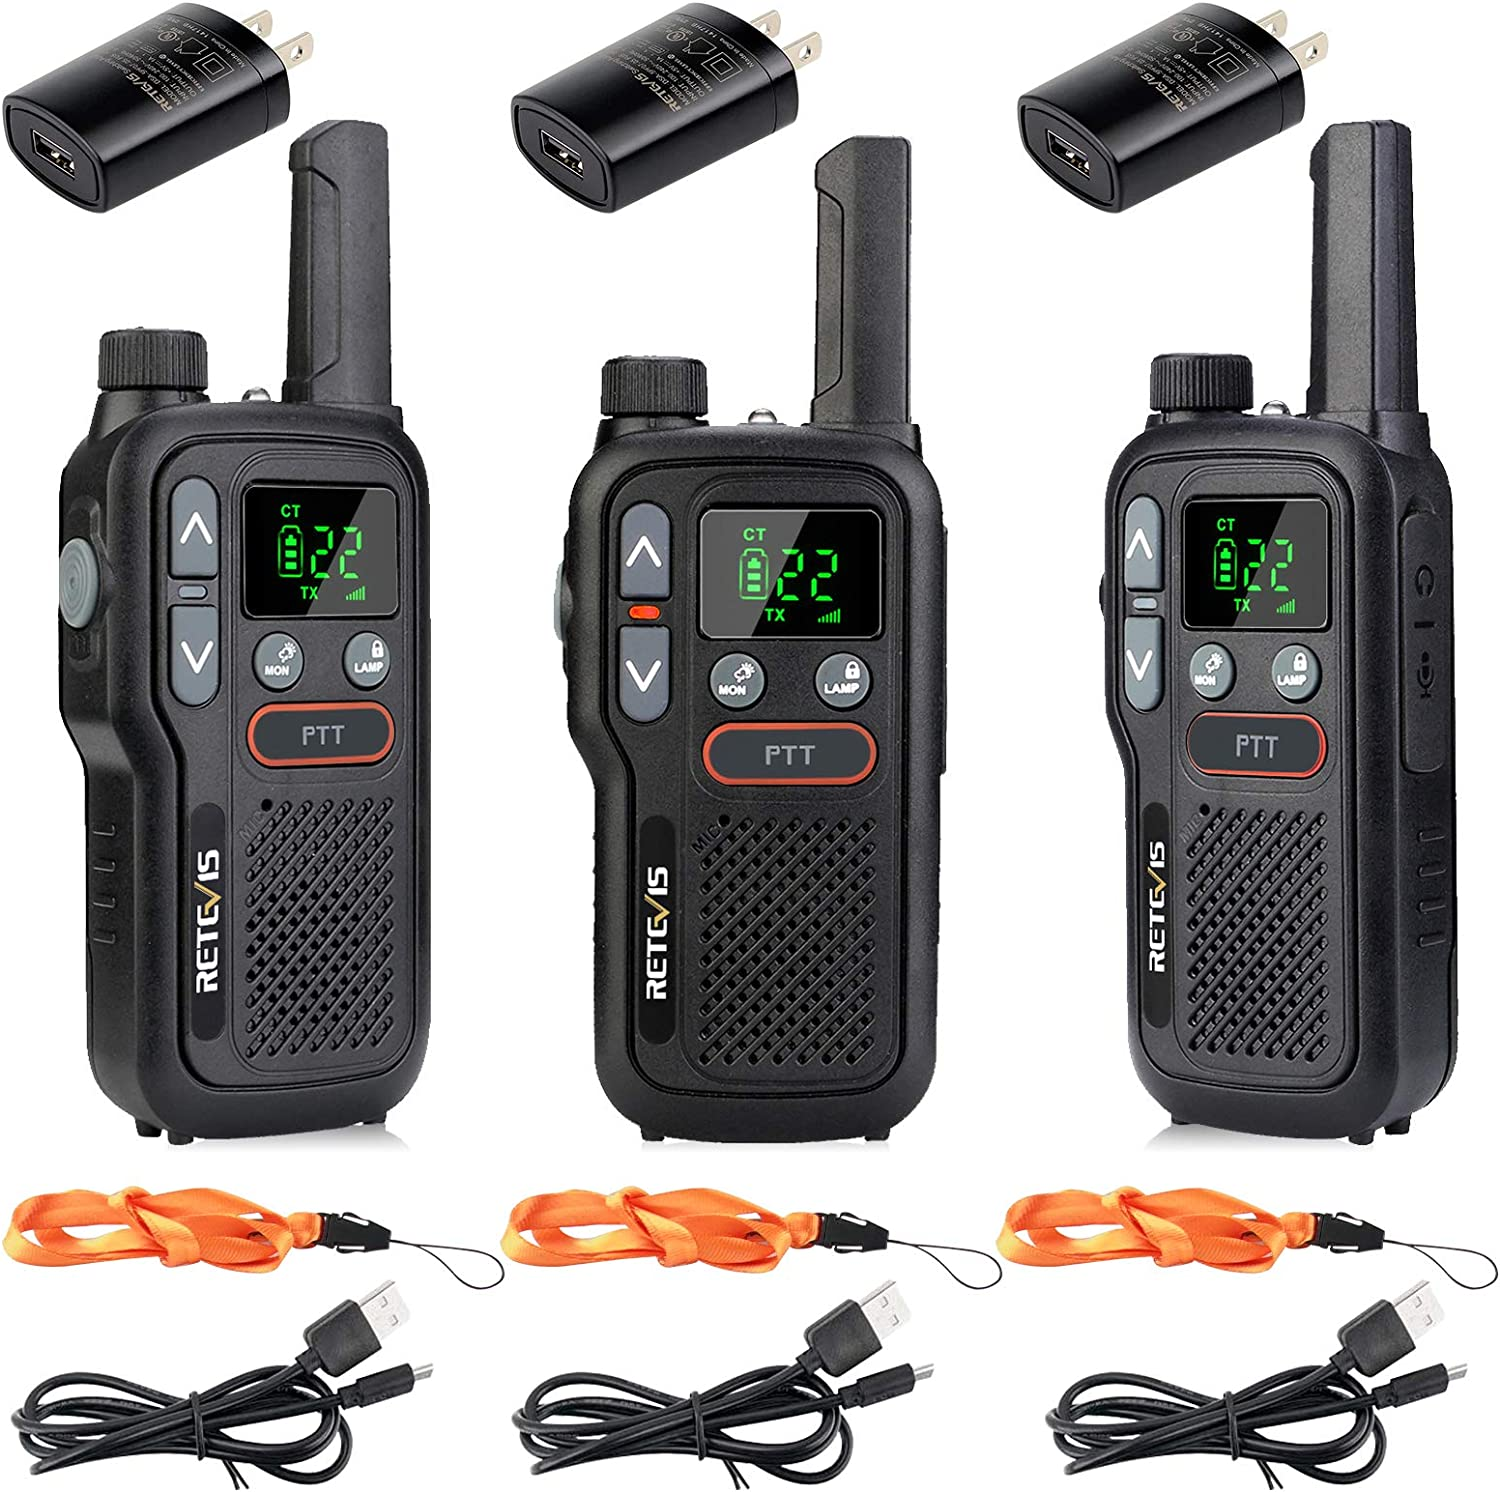 Retevis RB18 Walkie Talkie Adult Rechargeable,Long Range Two Way Radio FRS,NOAA Weather Alert Flashlight Dual PTT VOX,for Outdoor Cruise Camping(3 Pack)